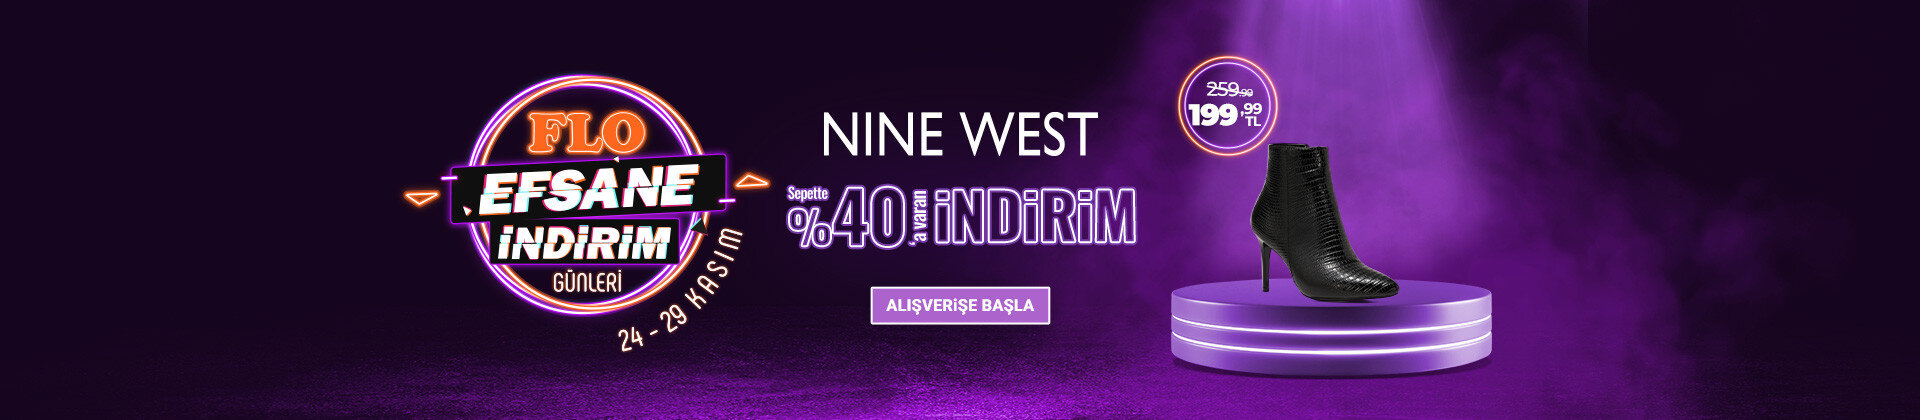 NINE WEST Sepette %40 a Varan İndirim